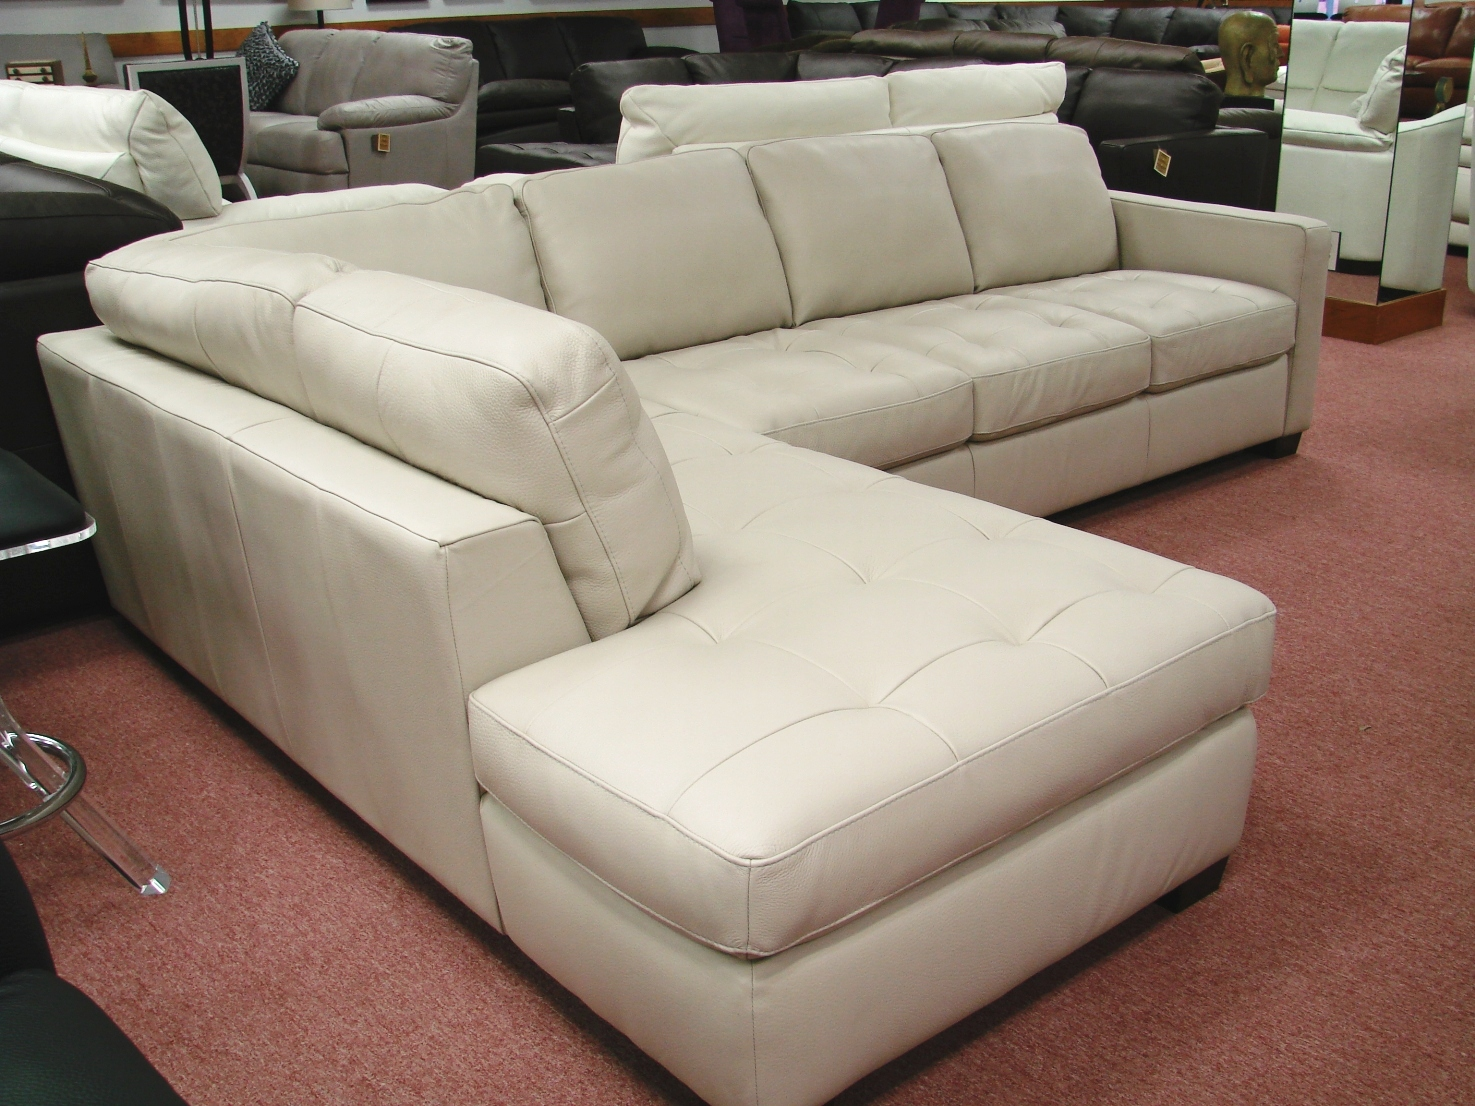 Natuzzi leather sofas sectionals by interior concepts for Leather sofas for sale